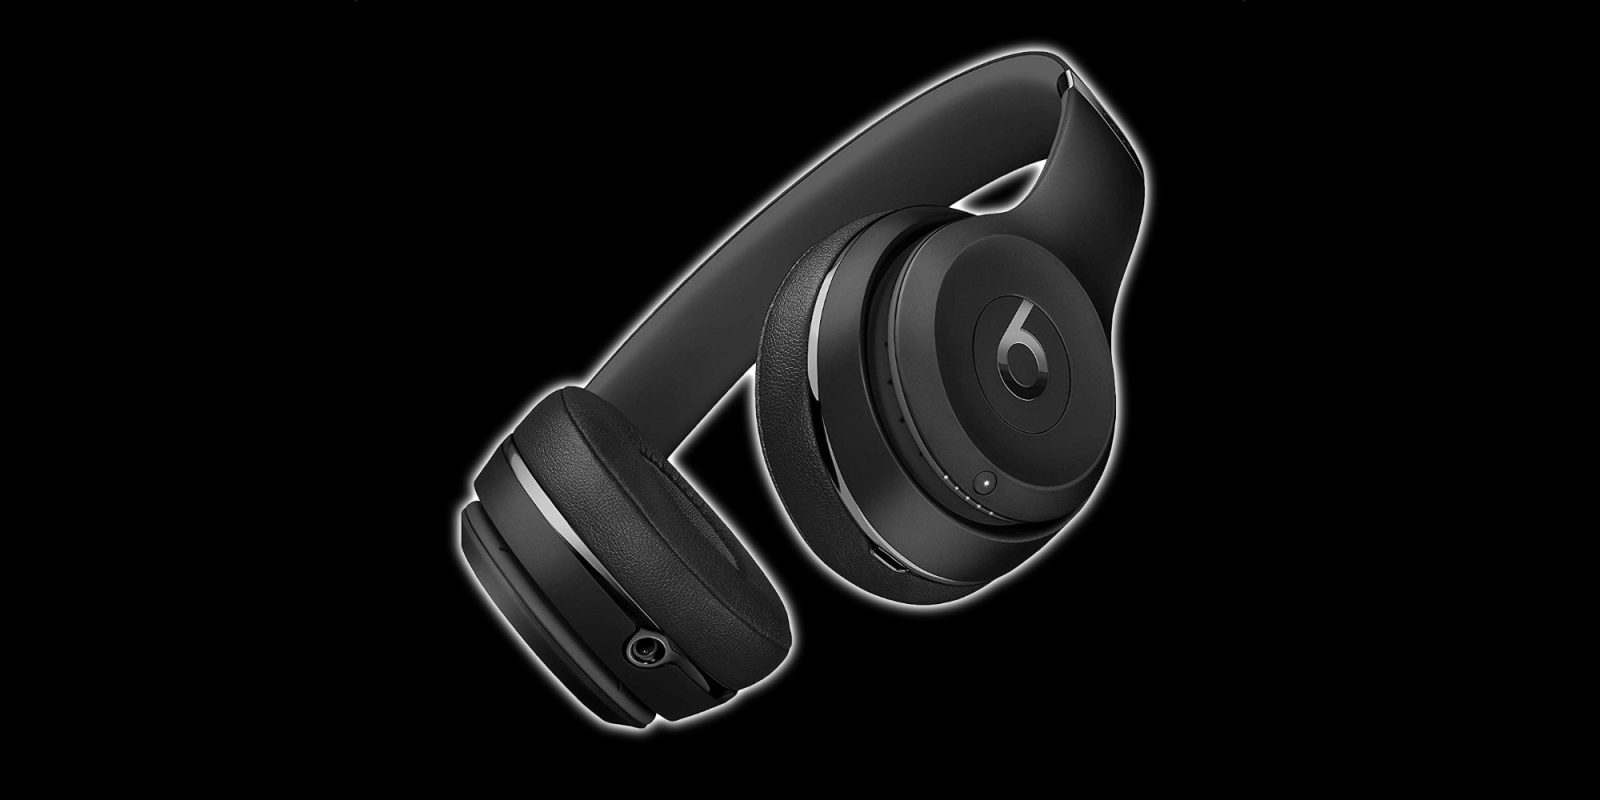 At $150, Beats Solo3 Wireless Headphones hit one of their lowest prices yet